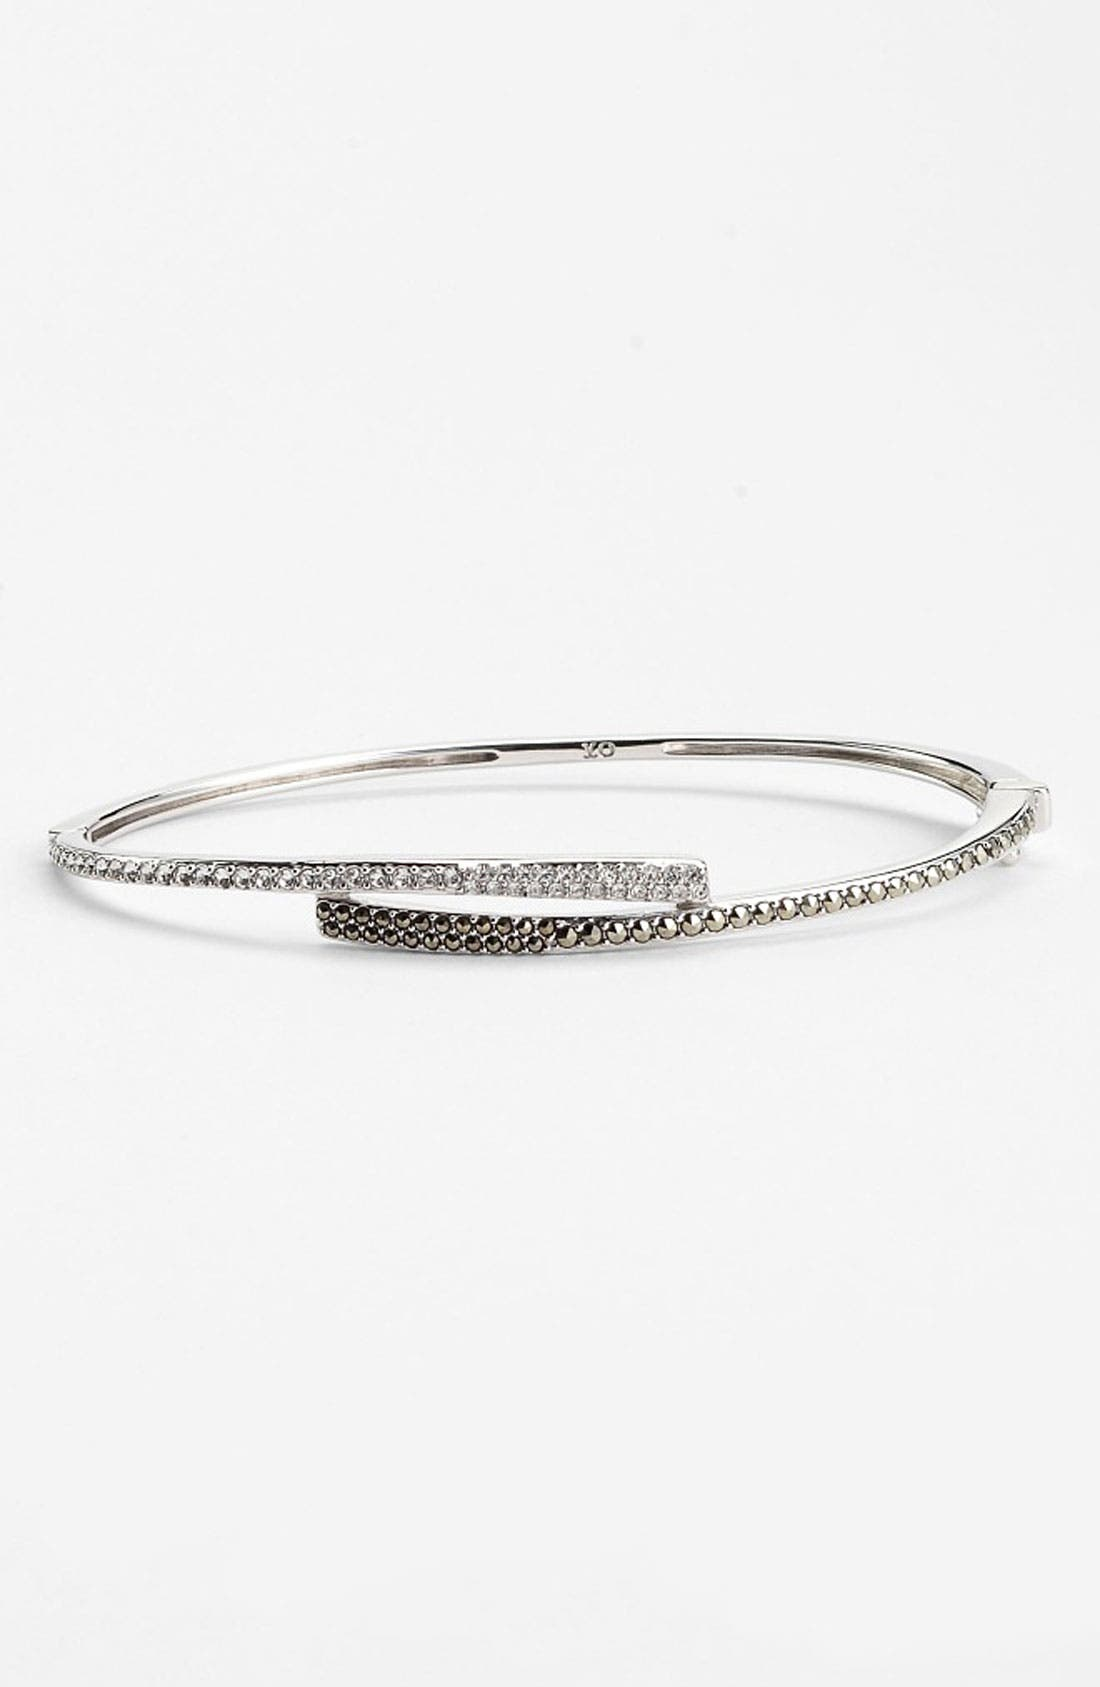 Alternate Image 1 Selected - Judith Jack 'Crystal Glitz' Bangle Bracelet